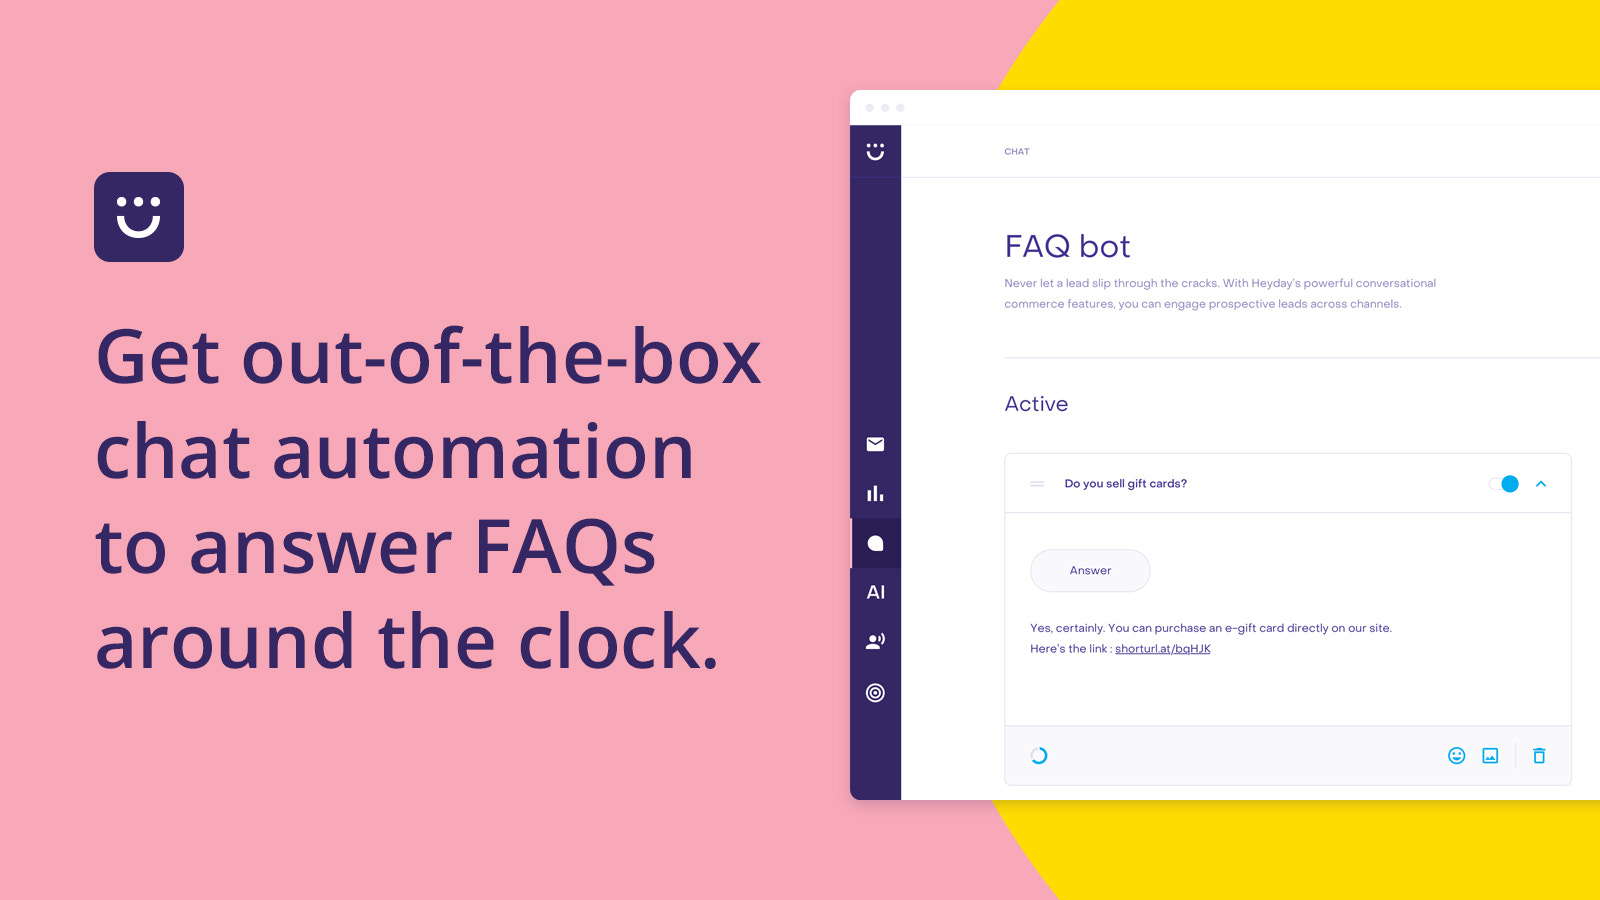 Answer FAQs around the clock